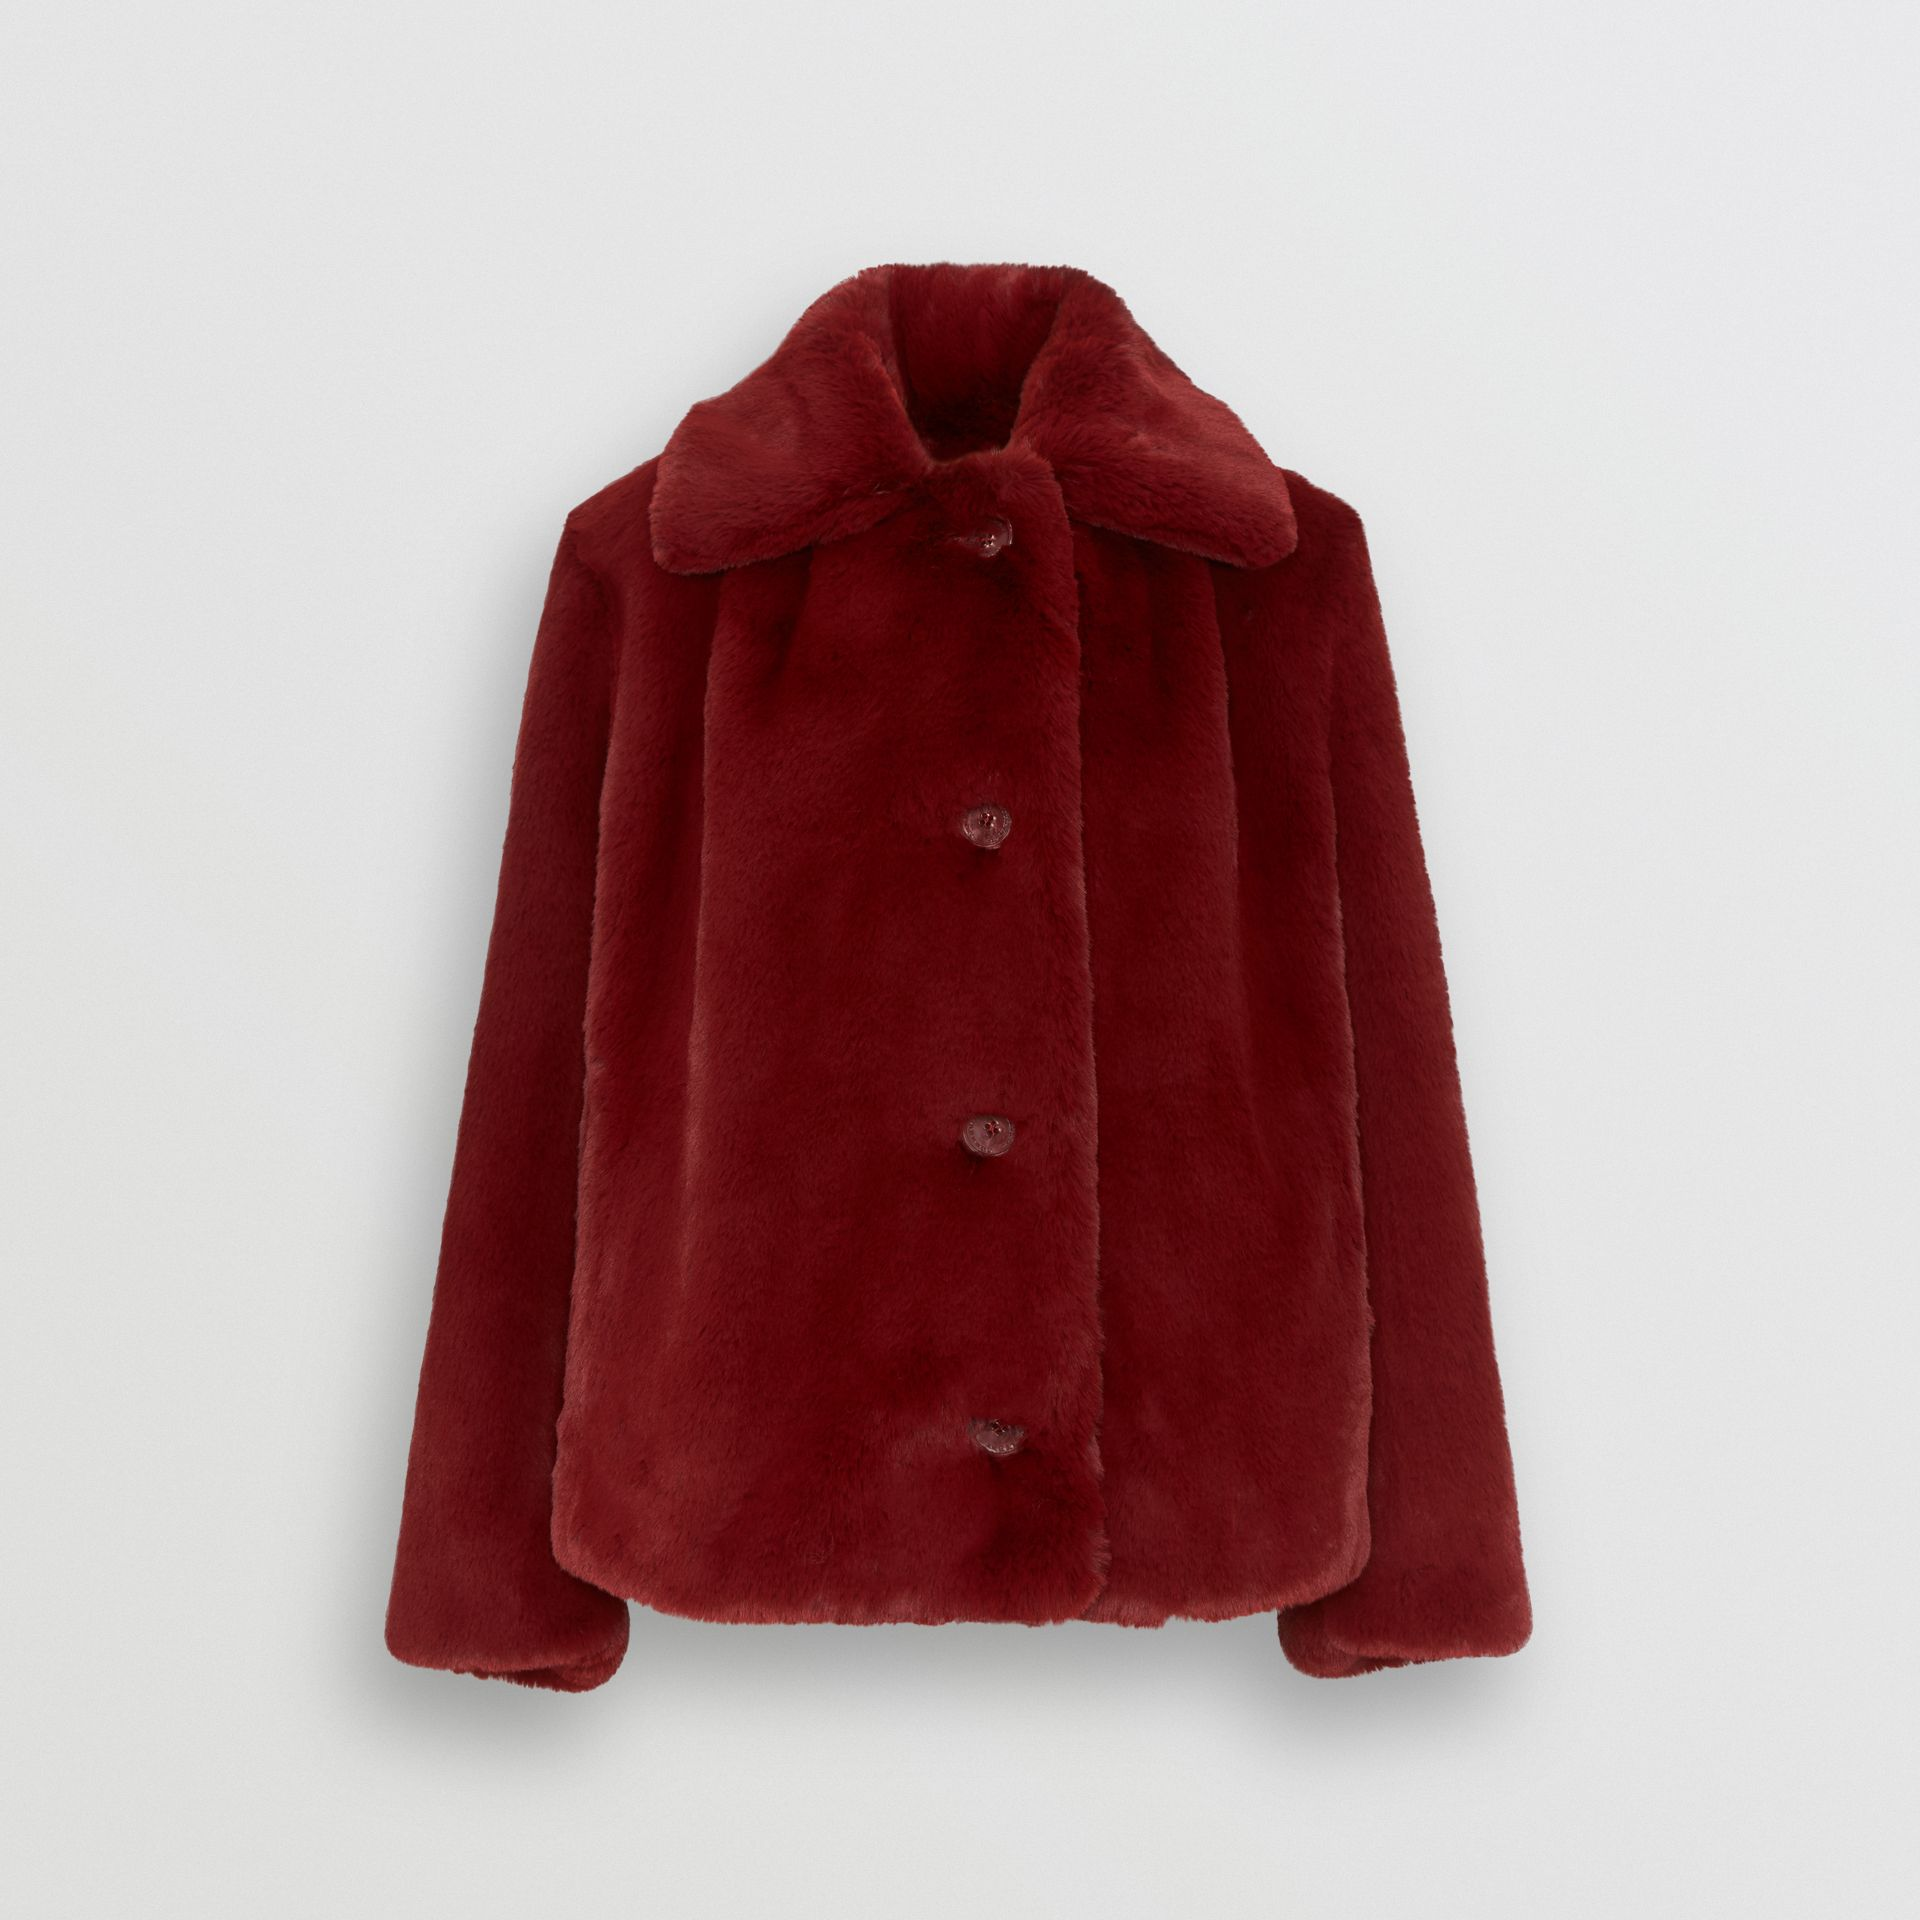 Faux Fur Single-Breasted Jacket in Burgundy - Women | Burberry Australia - gallery image 3